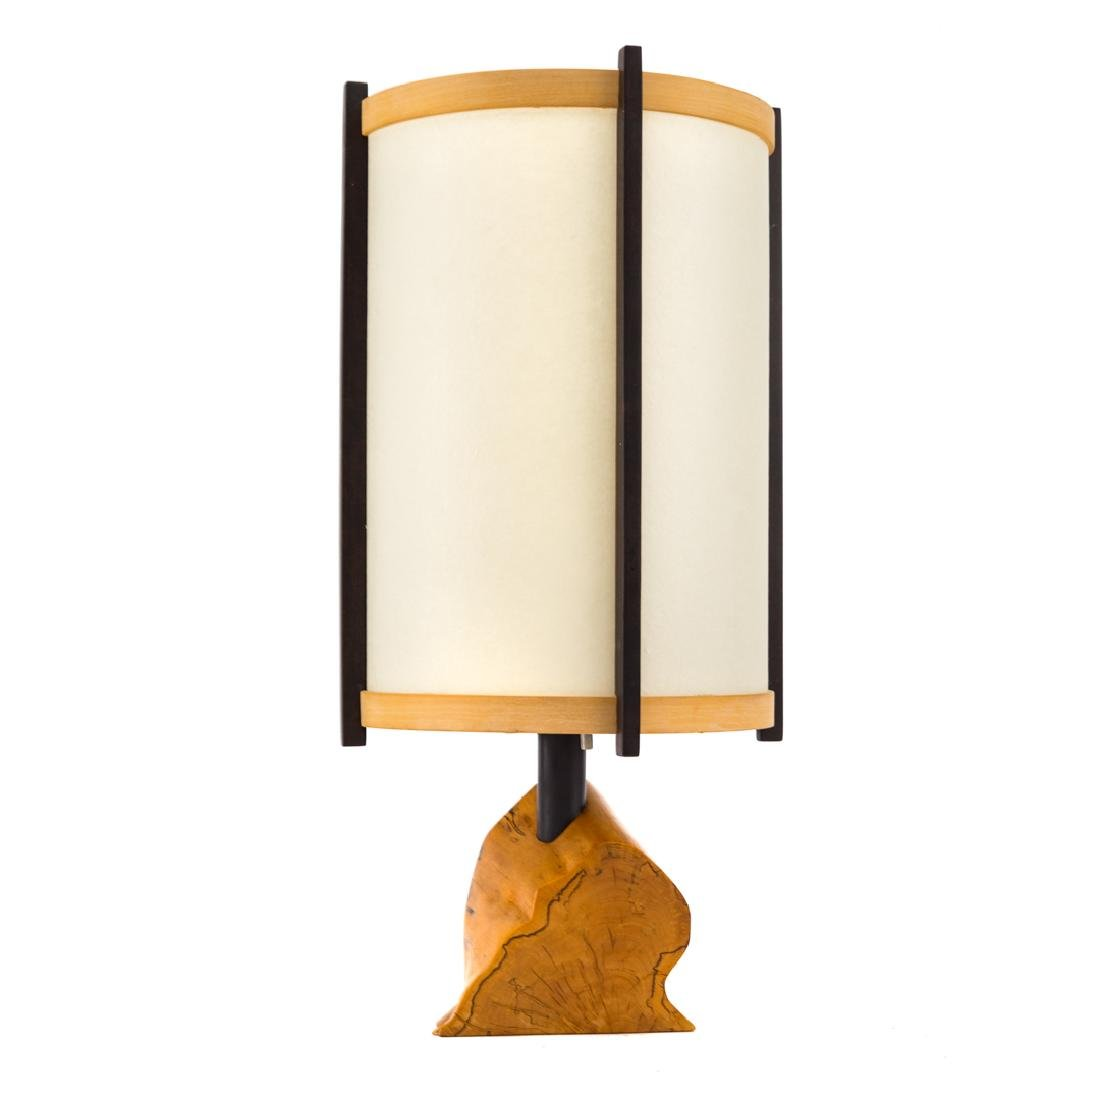 George Nakashima Desk Lamp